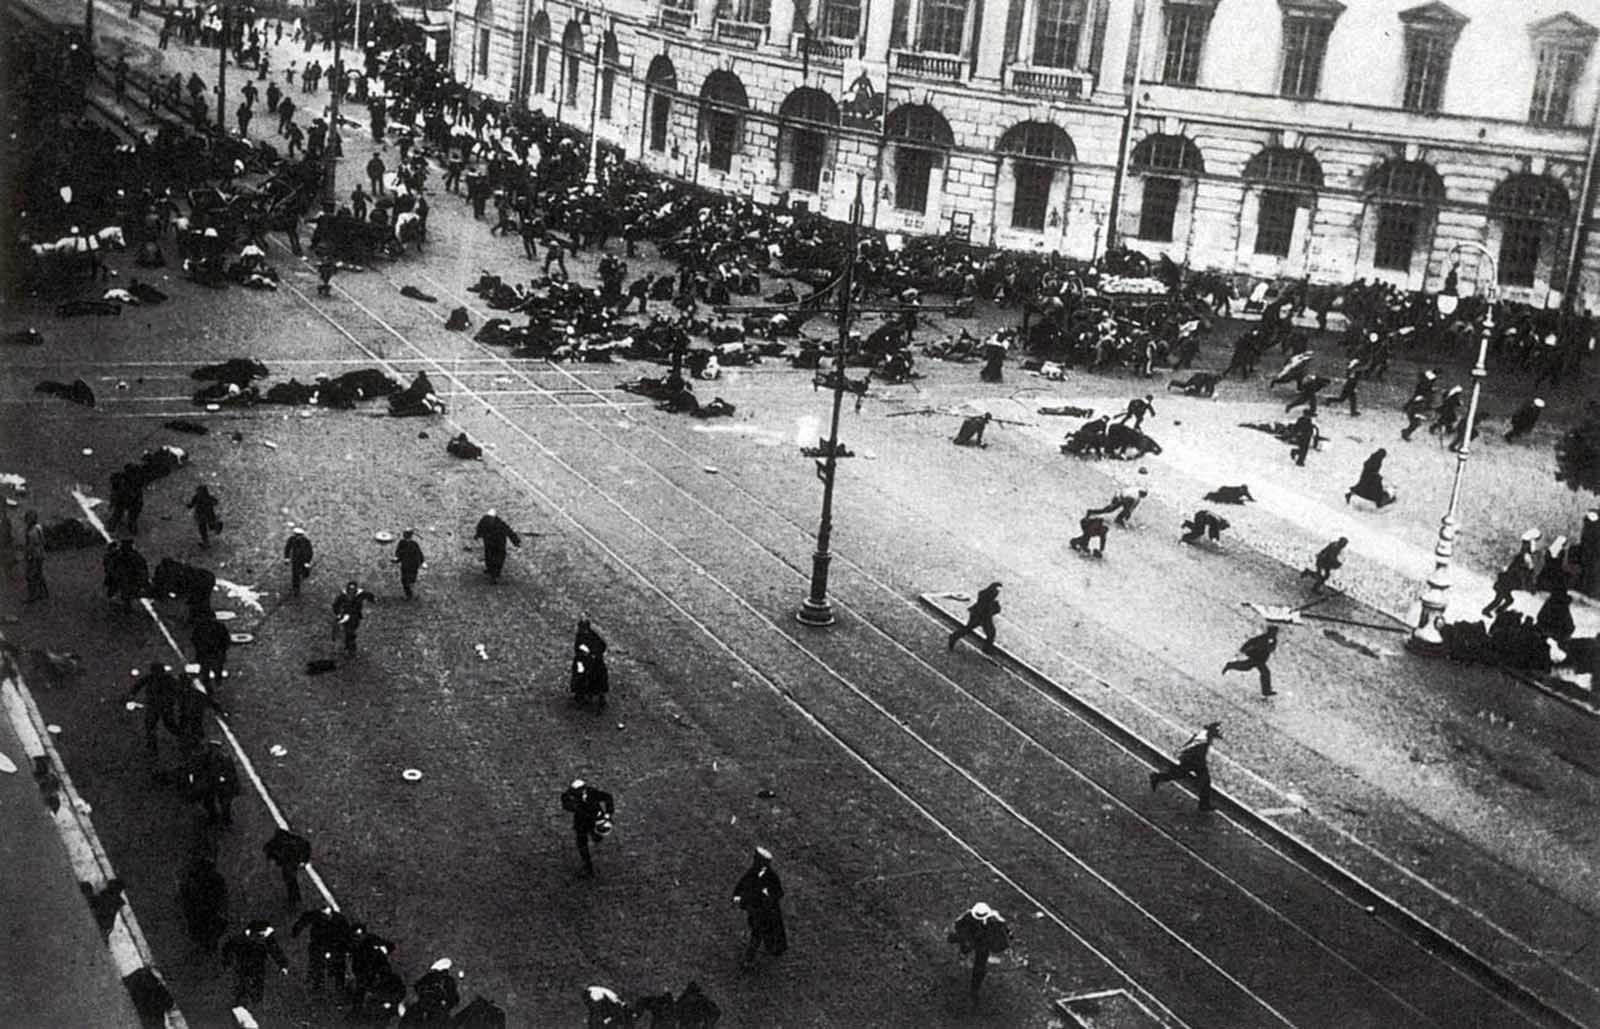 Street demonstration on Nevsky Prospekt just after troops of the Provisional Government have opened fire with machine guns. July 17, 1917.